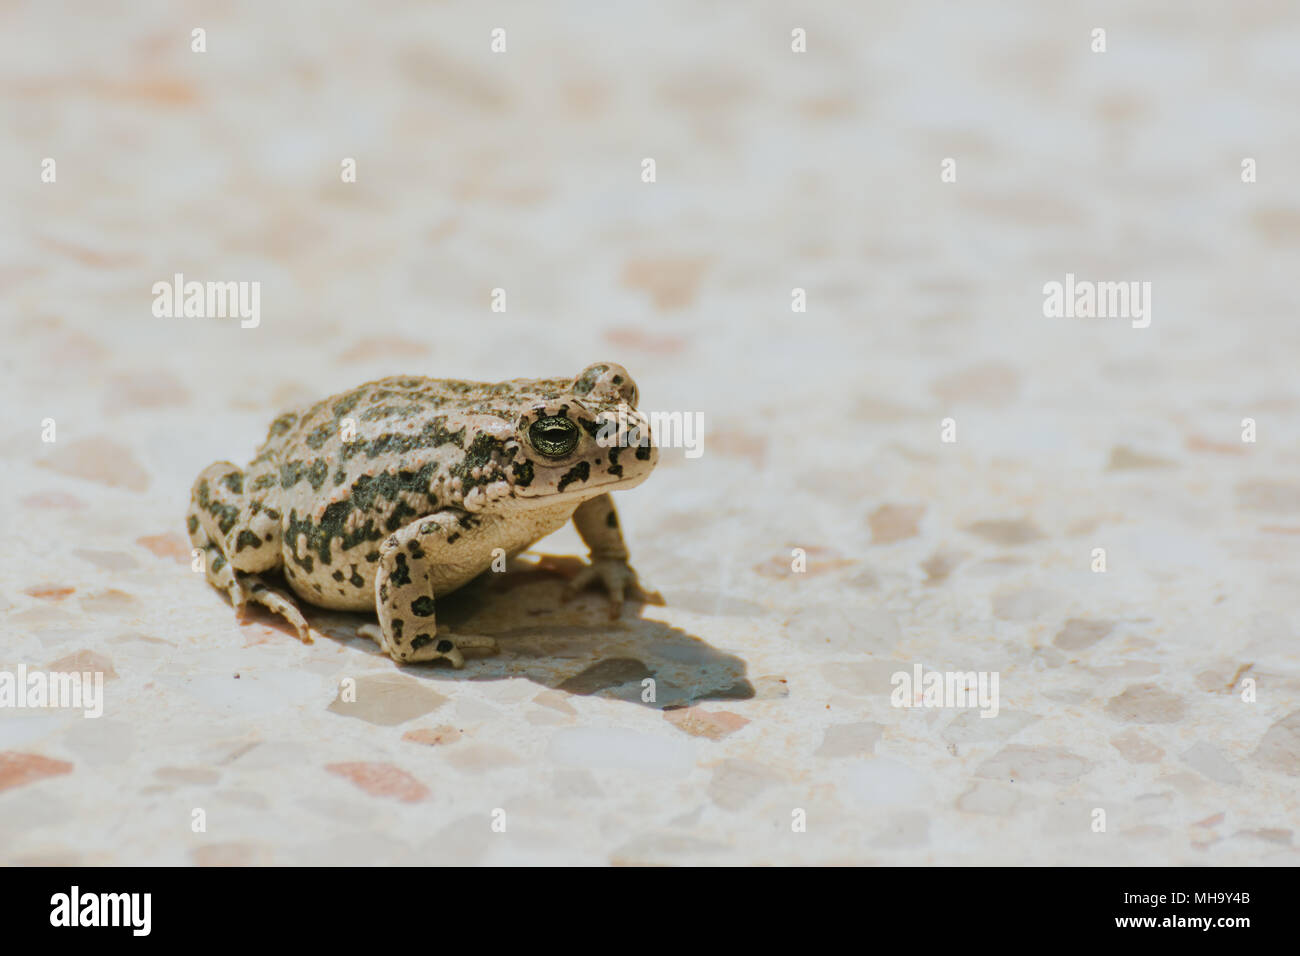 A beautiful brown frog sitting on a ground,. Early spring scenery. New life in spring. Shallow depth of field - Stock Image